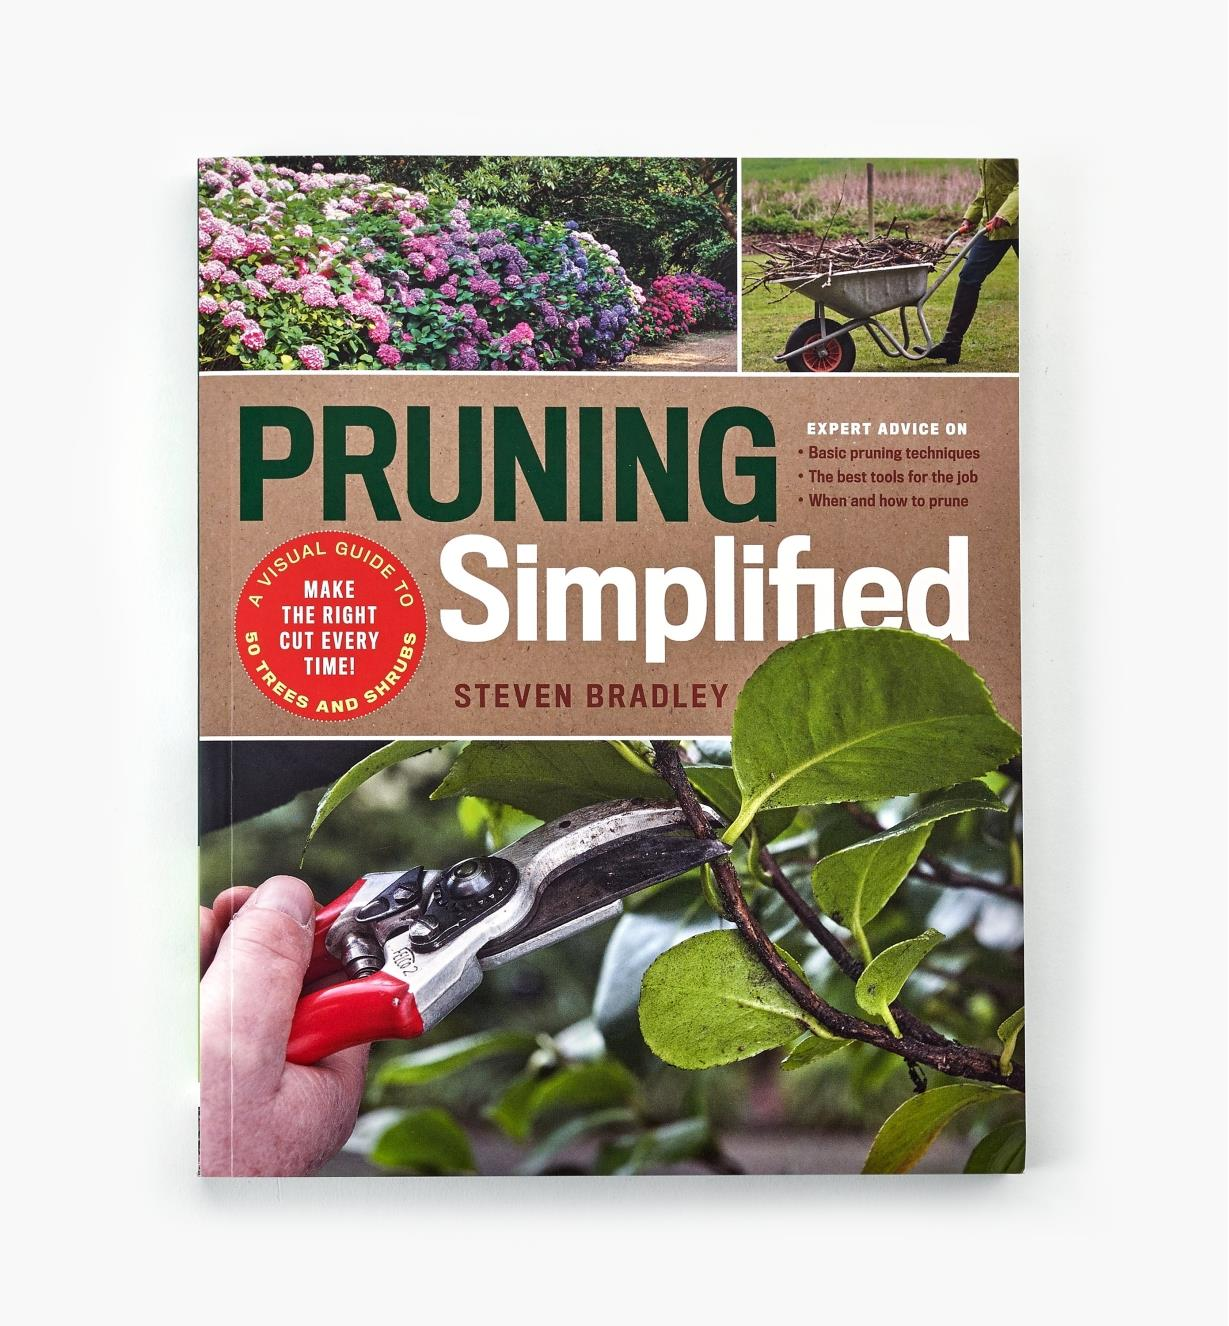 LA972 - Pruning Simplified